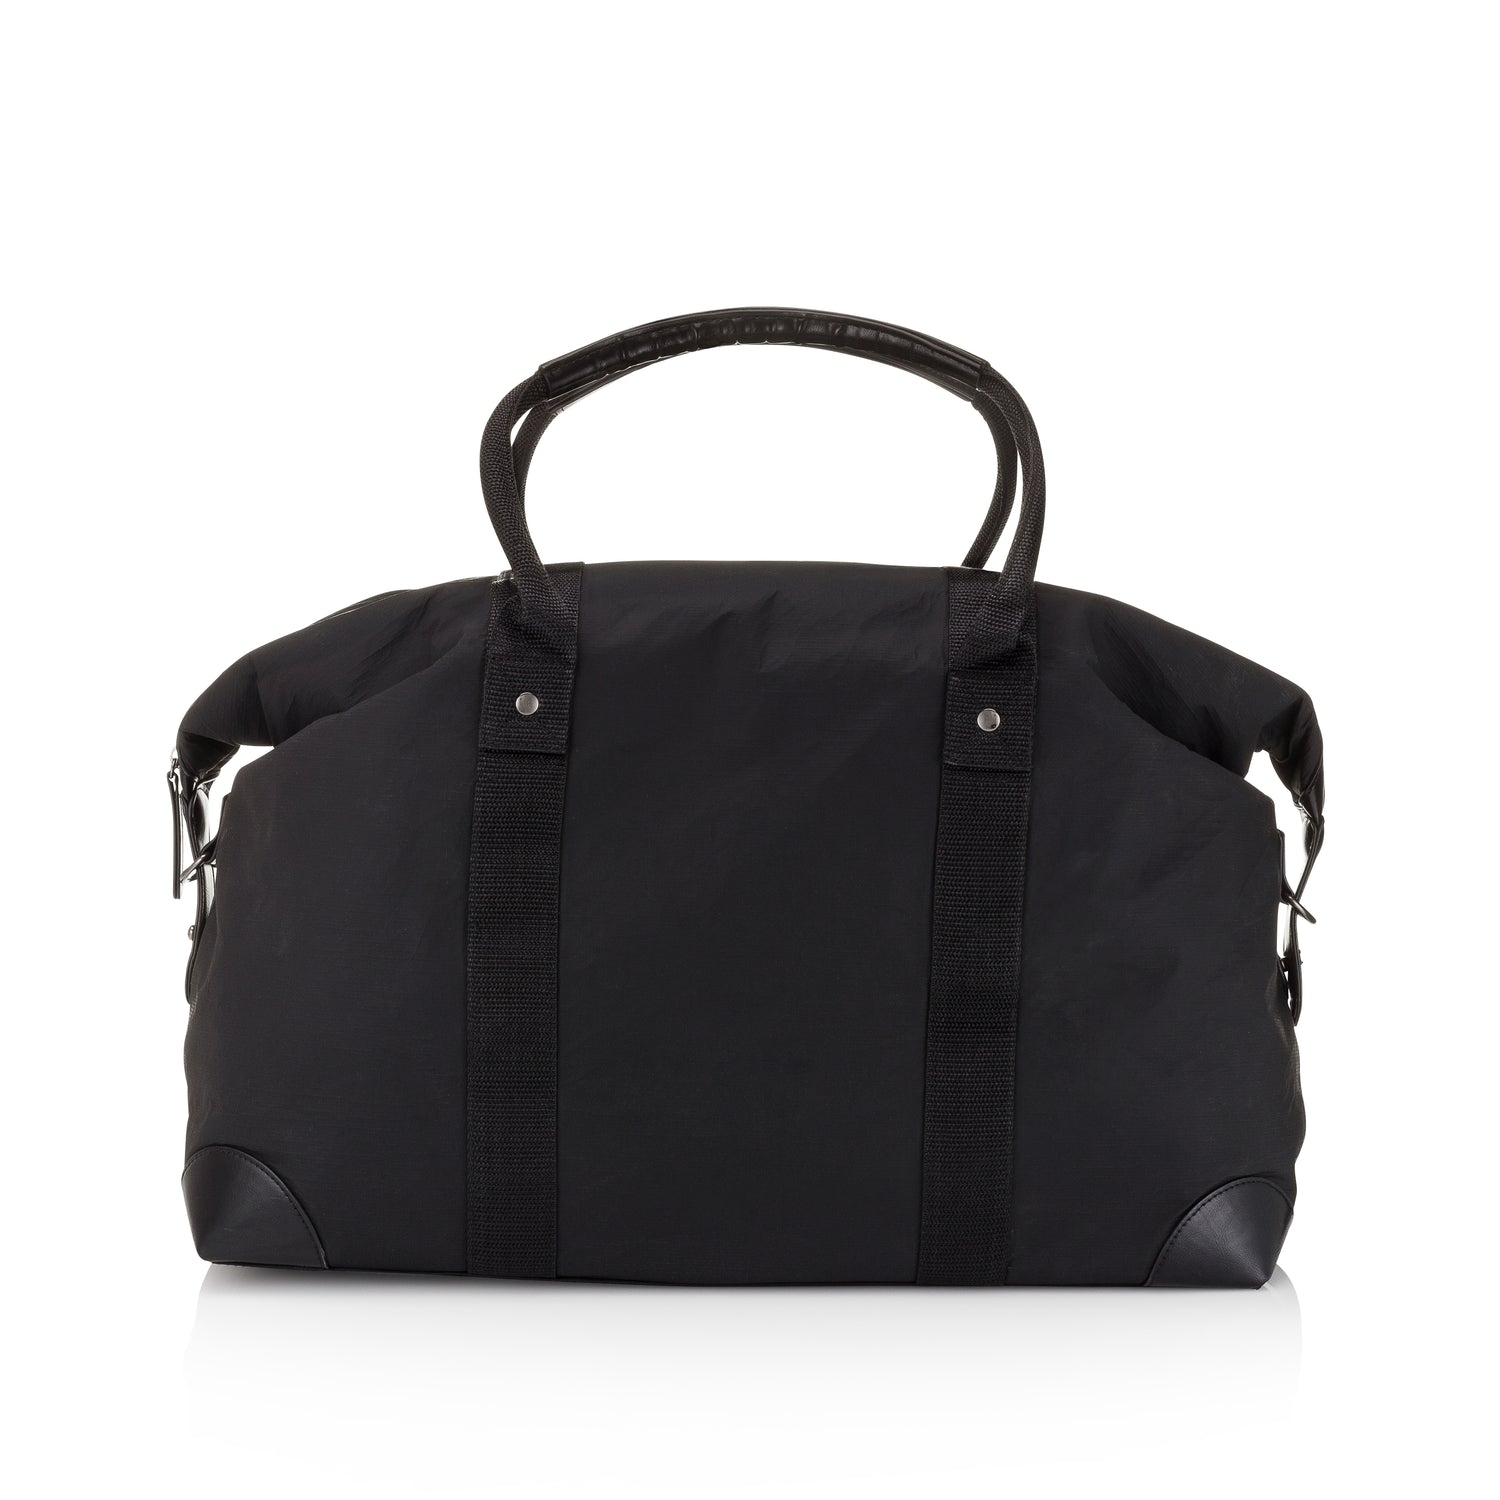 The Weekender Carry-On Travel Luggage Bag - Black